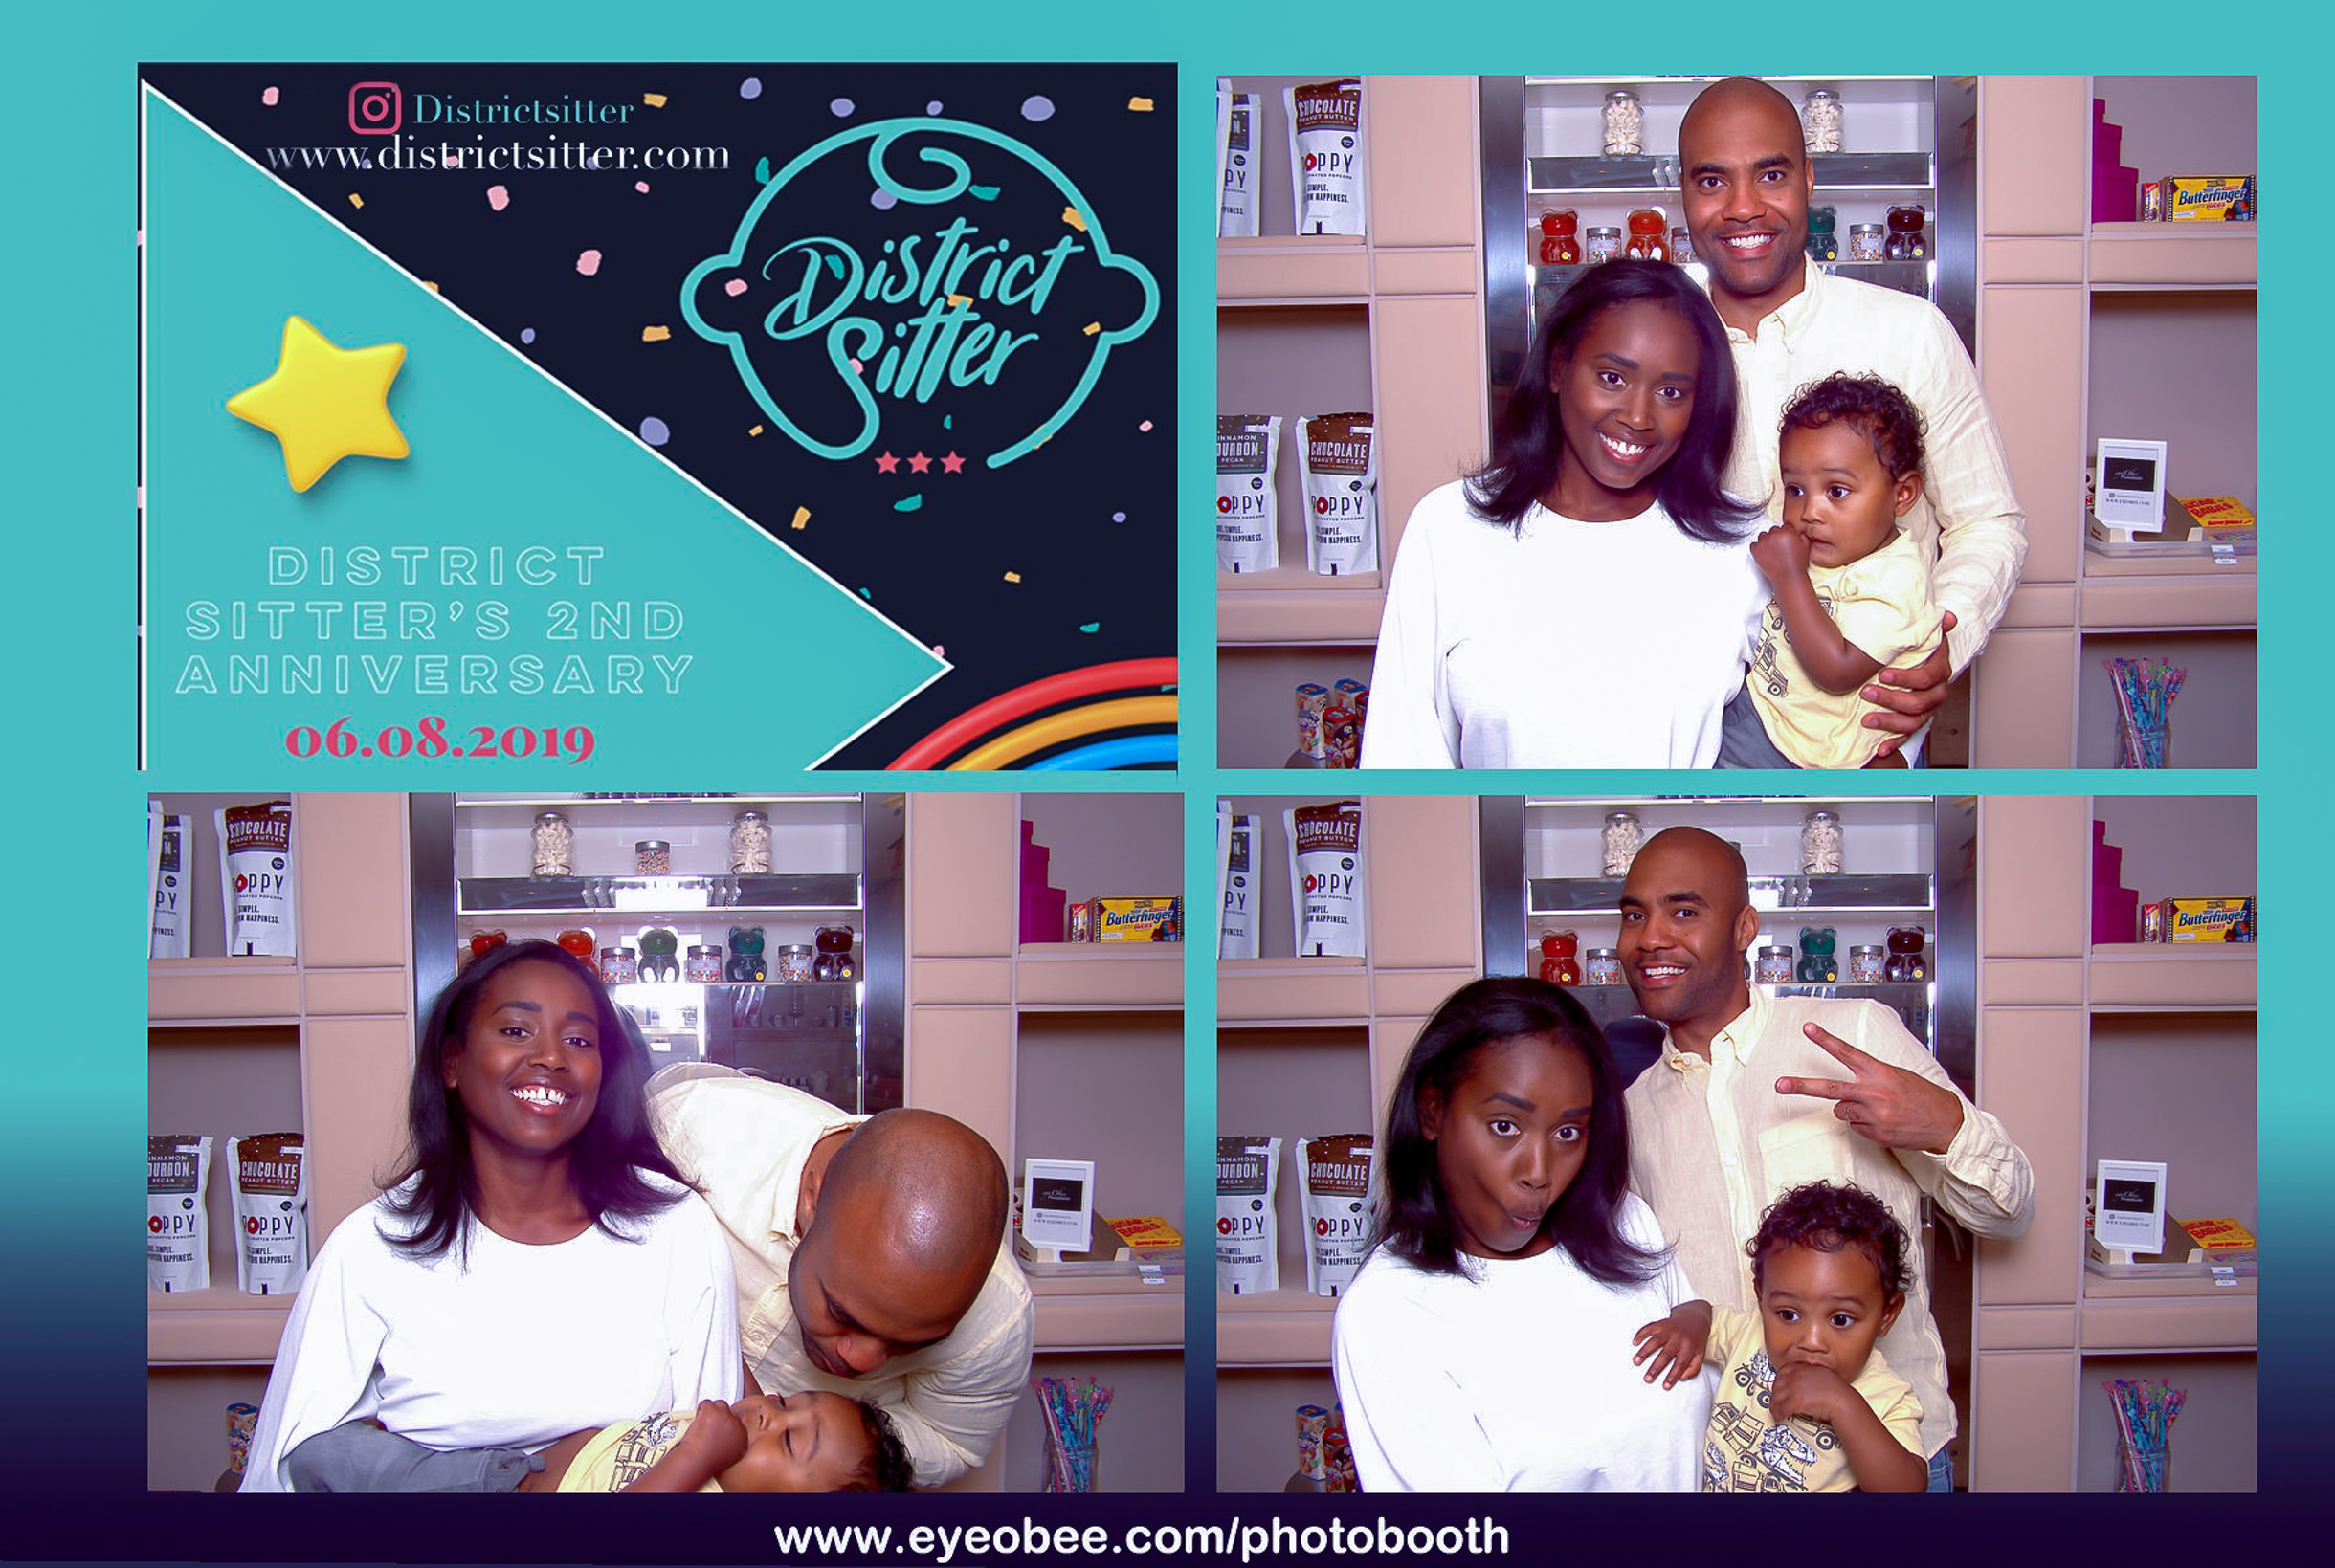 eyeobee PhotoBooth-93.jpg